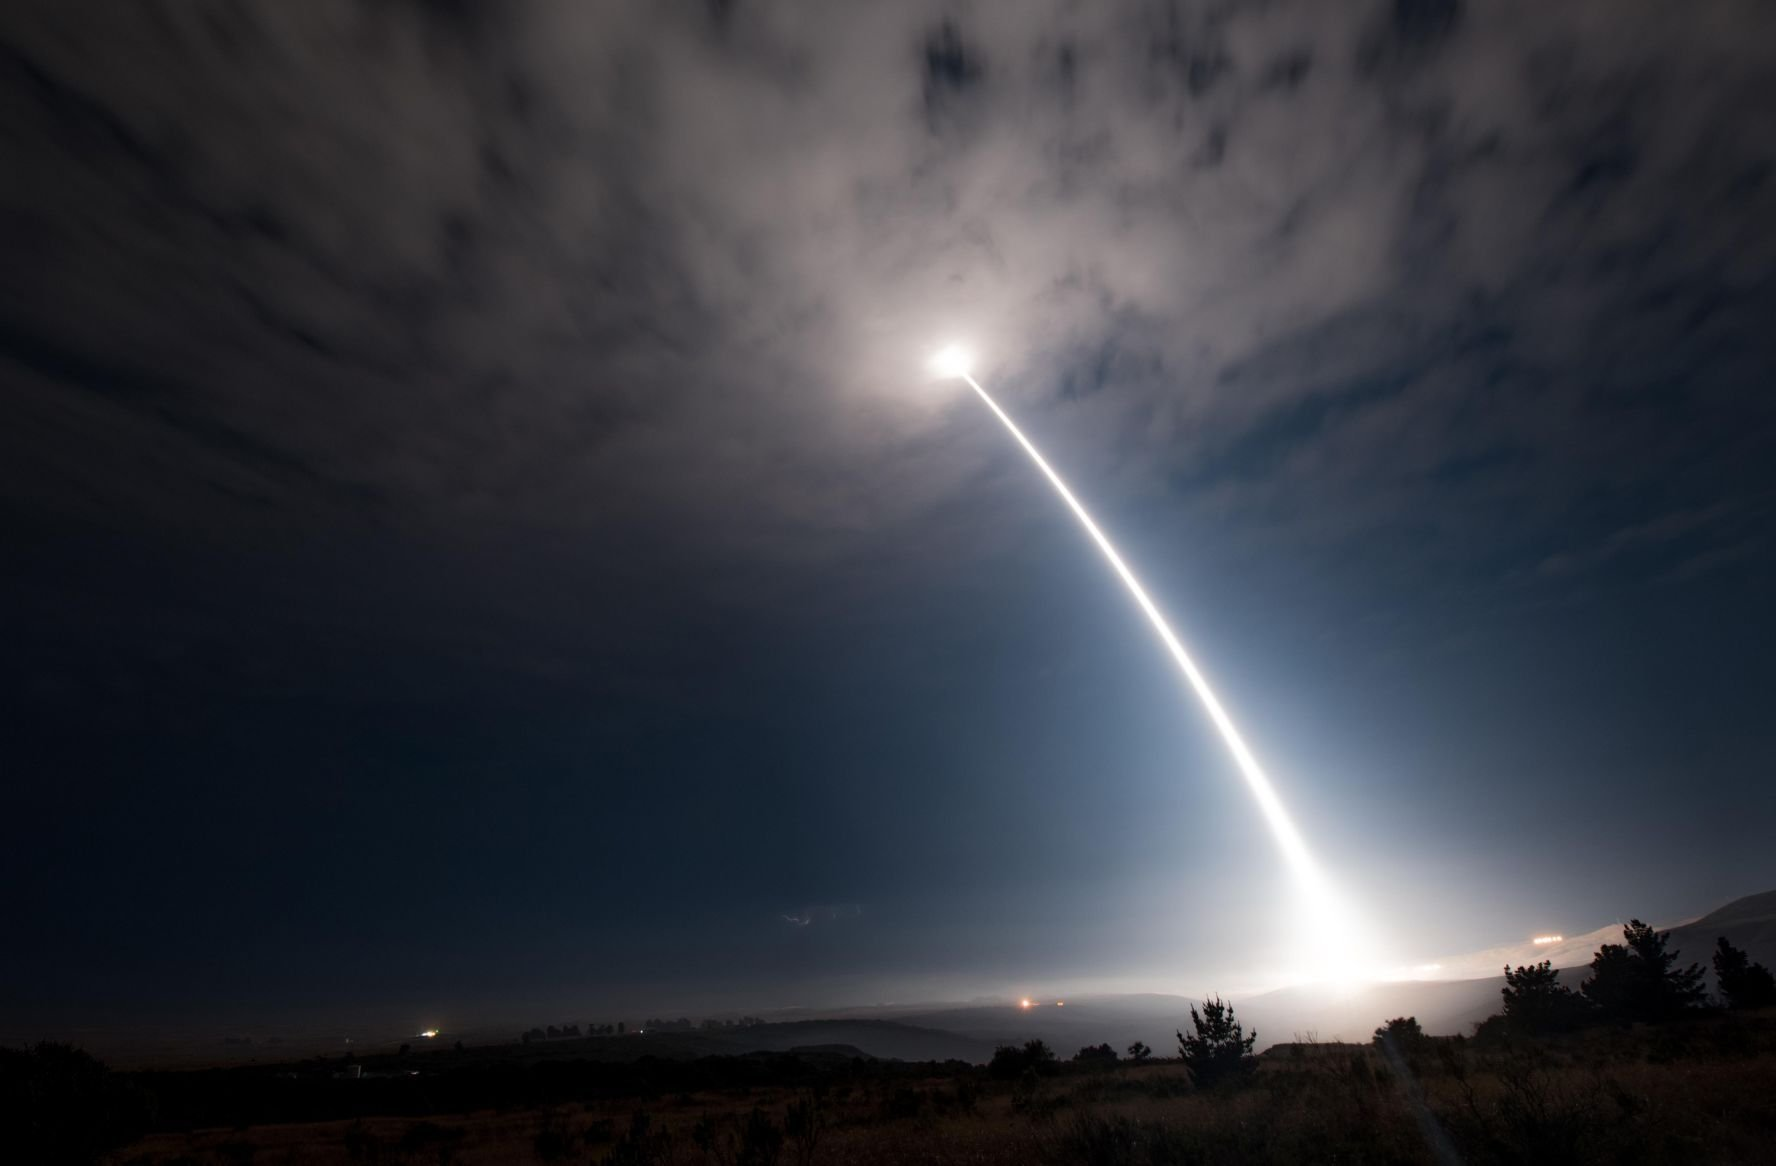 USA successfully tests ICBM: Watch missile soar through the sky